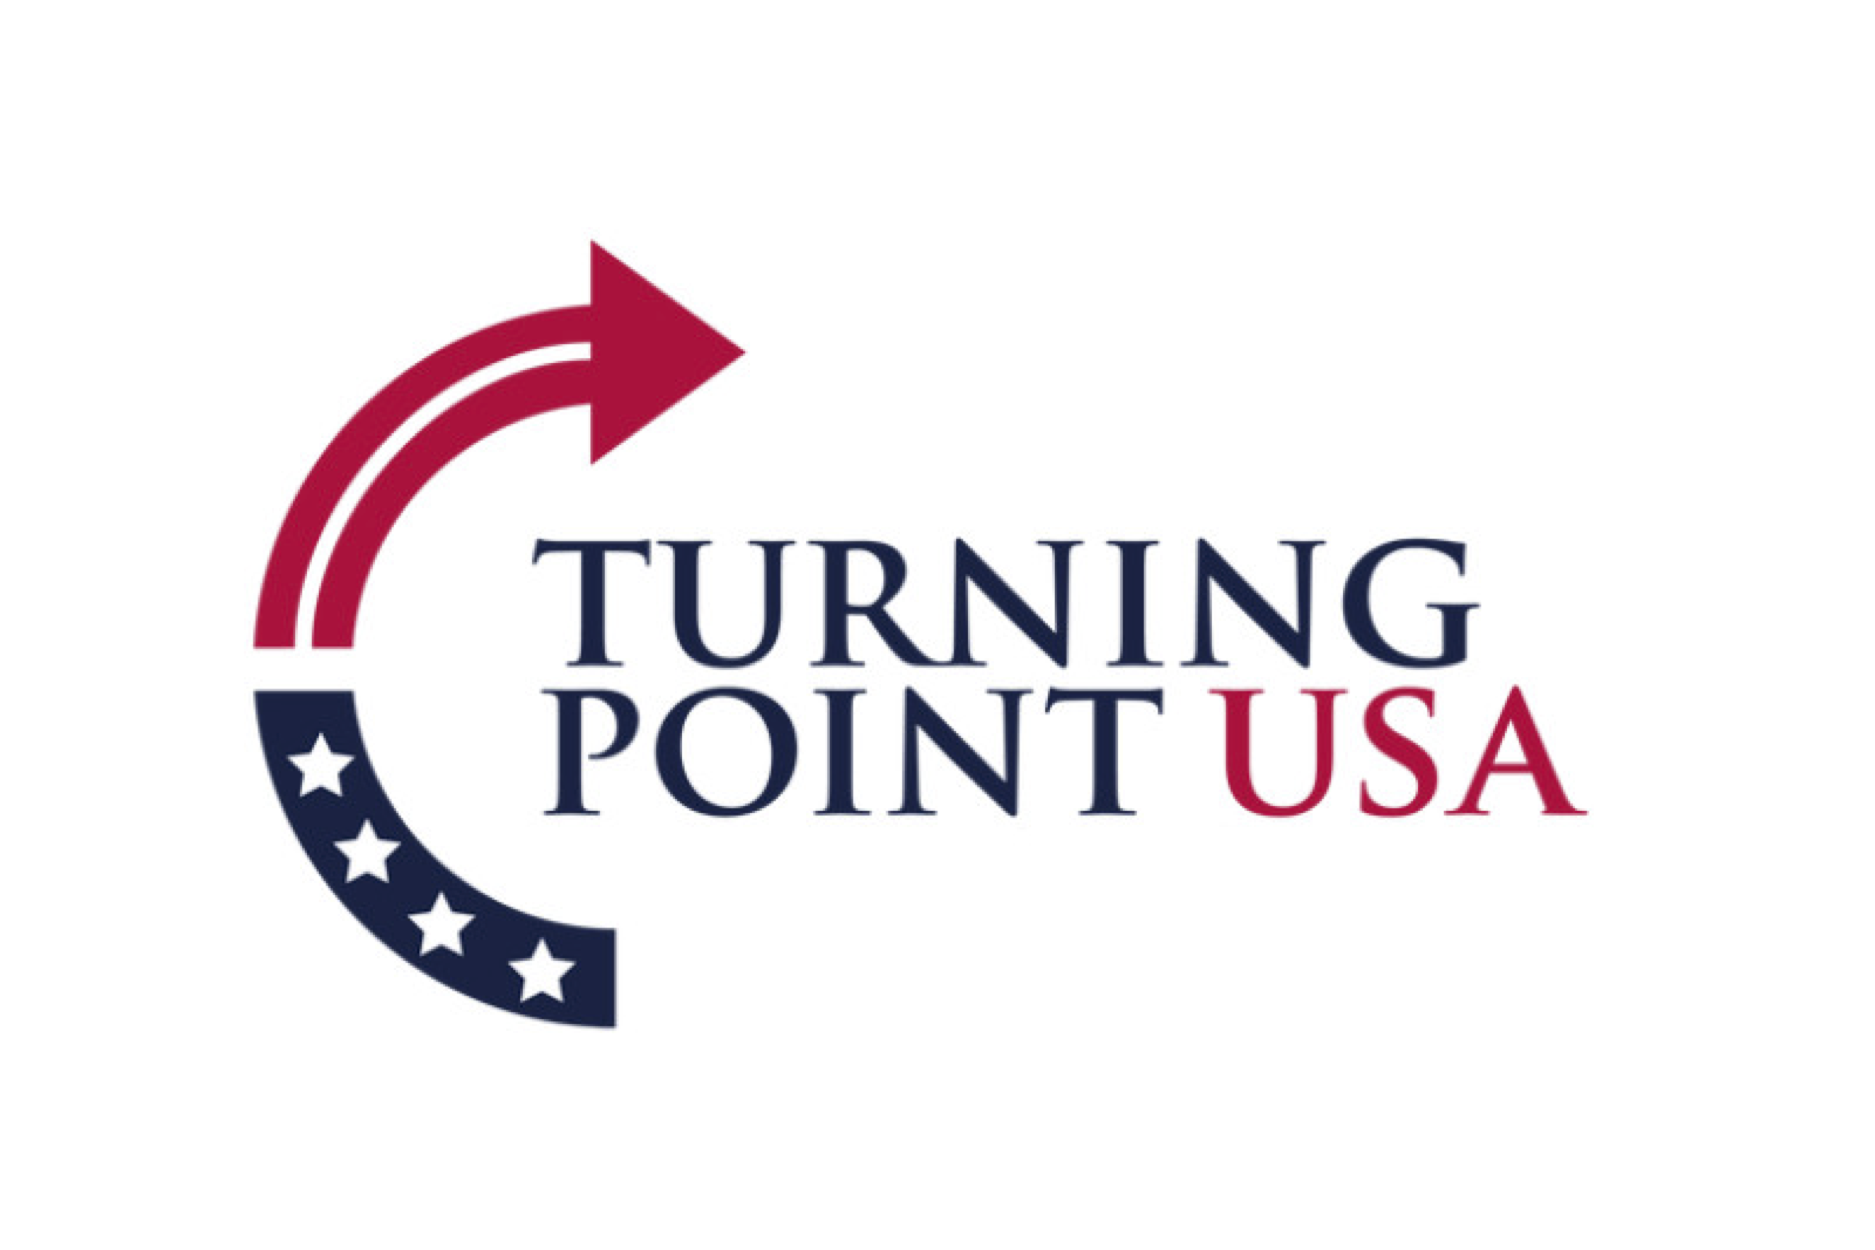 The Turning Point Fiasco: Could organization be operating on campus?